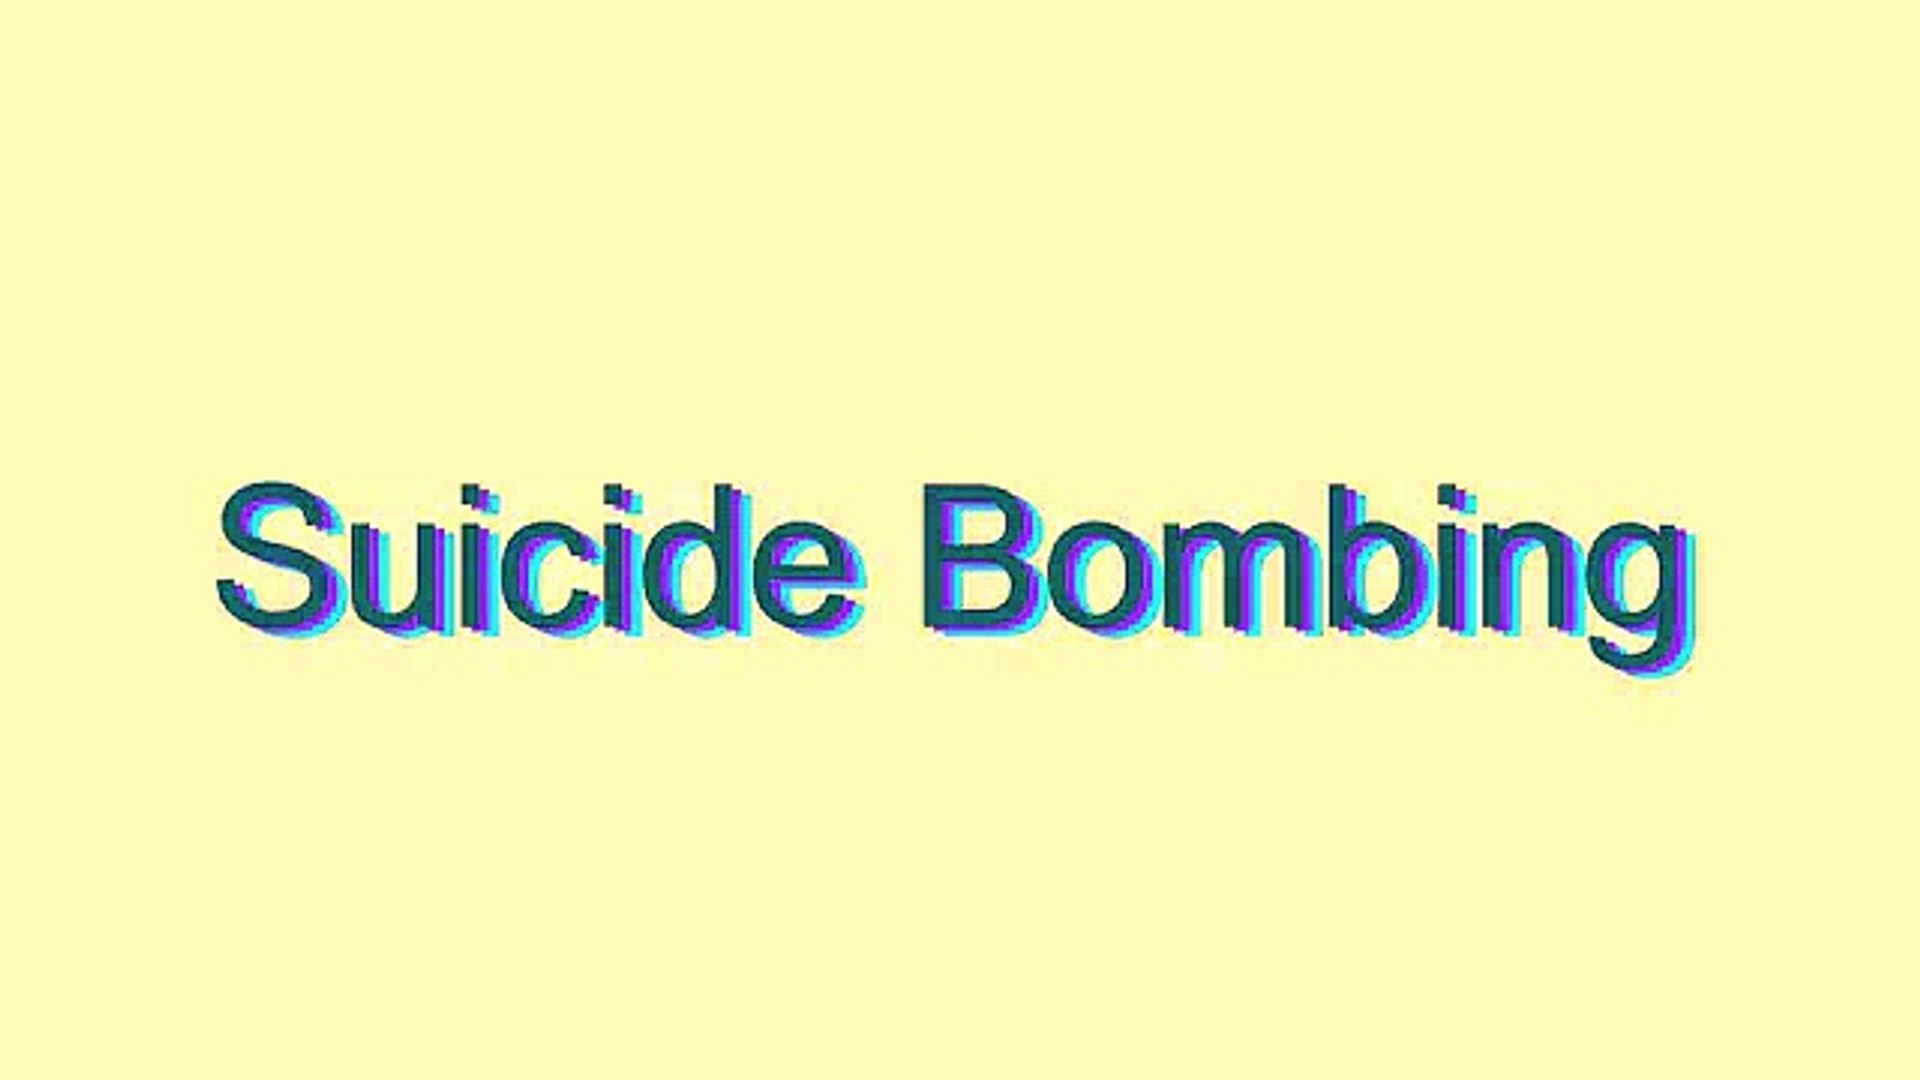 How to Pronounce Suicide Bombing